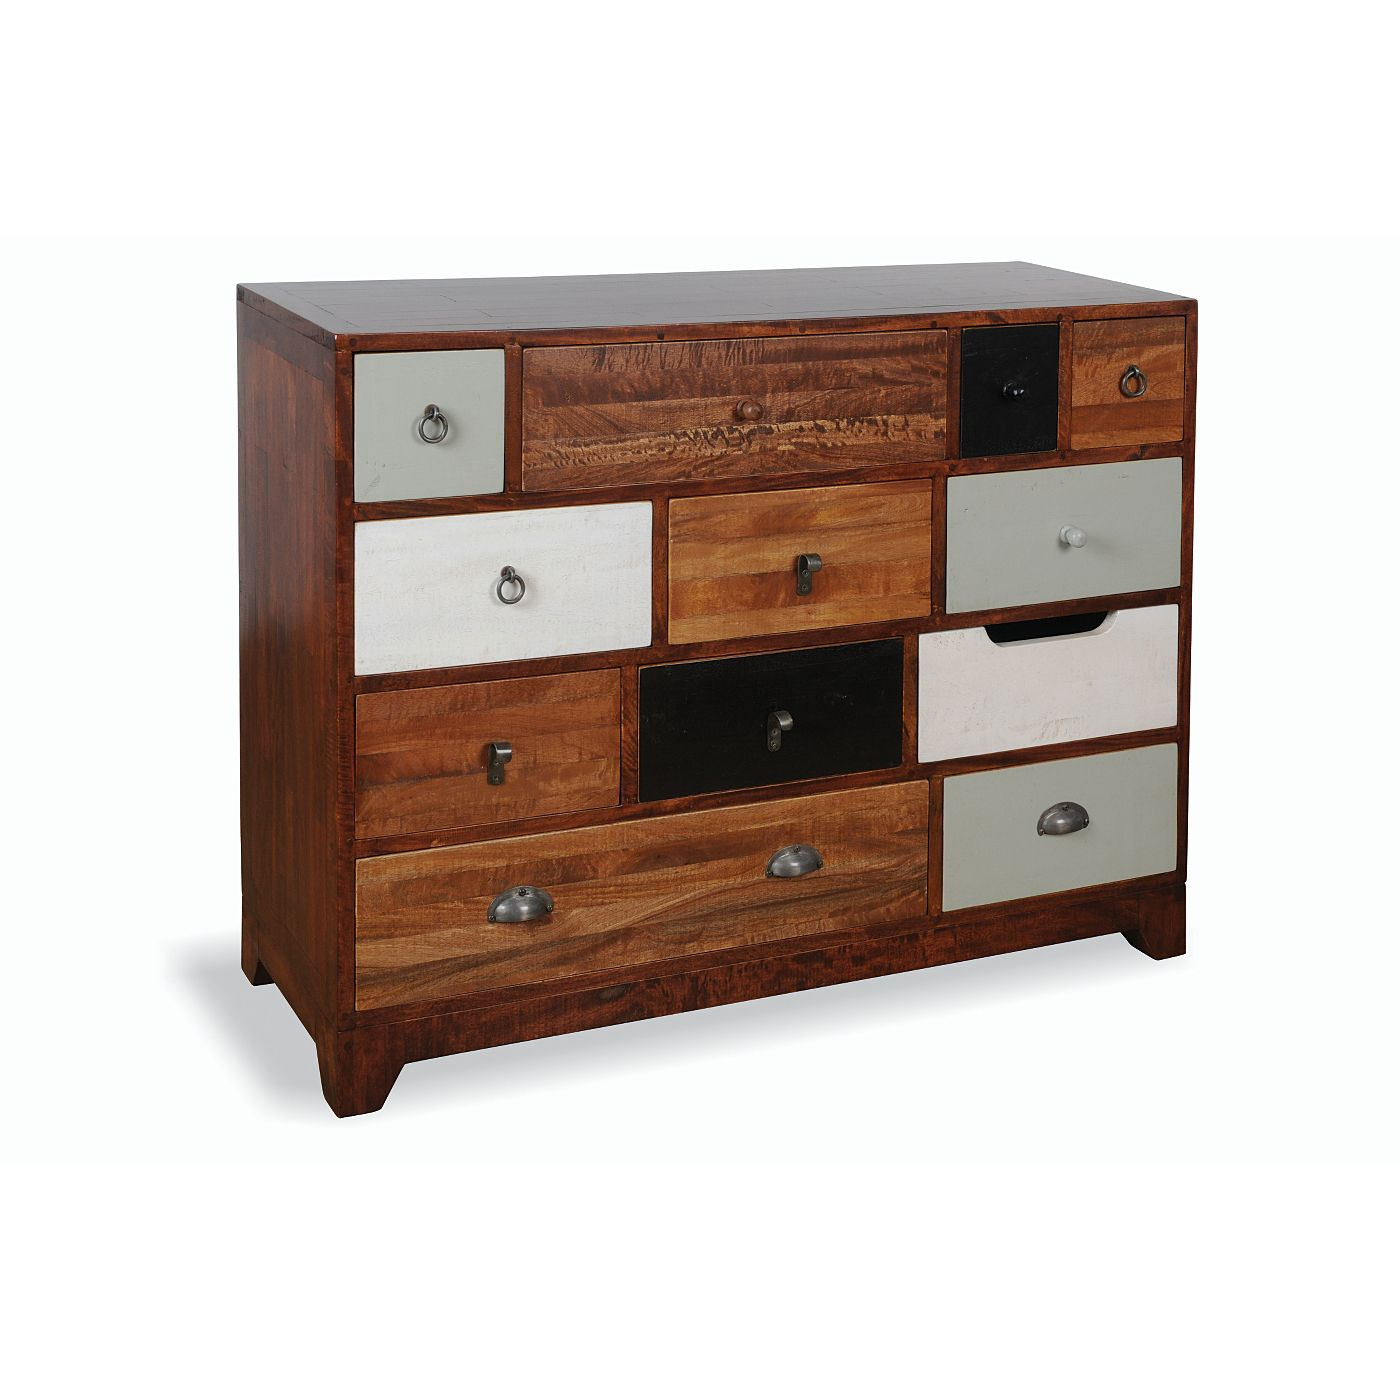 Rye 12 Drawer Chest Of Drawers Multicoloured Chest Of Drawers